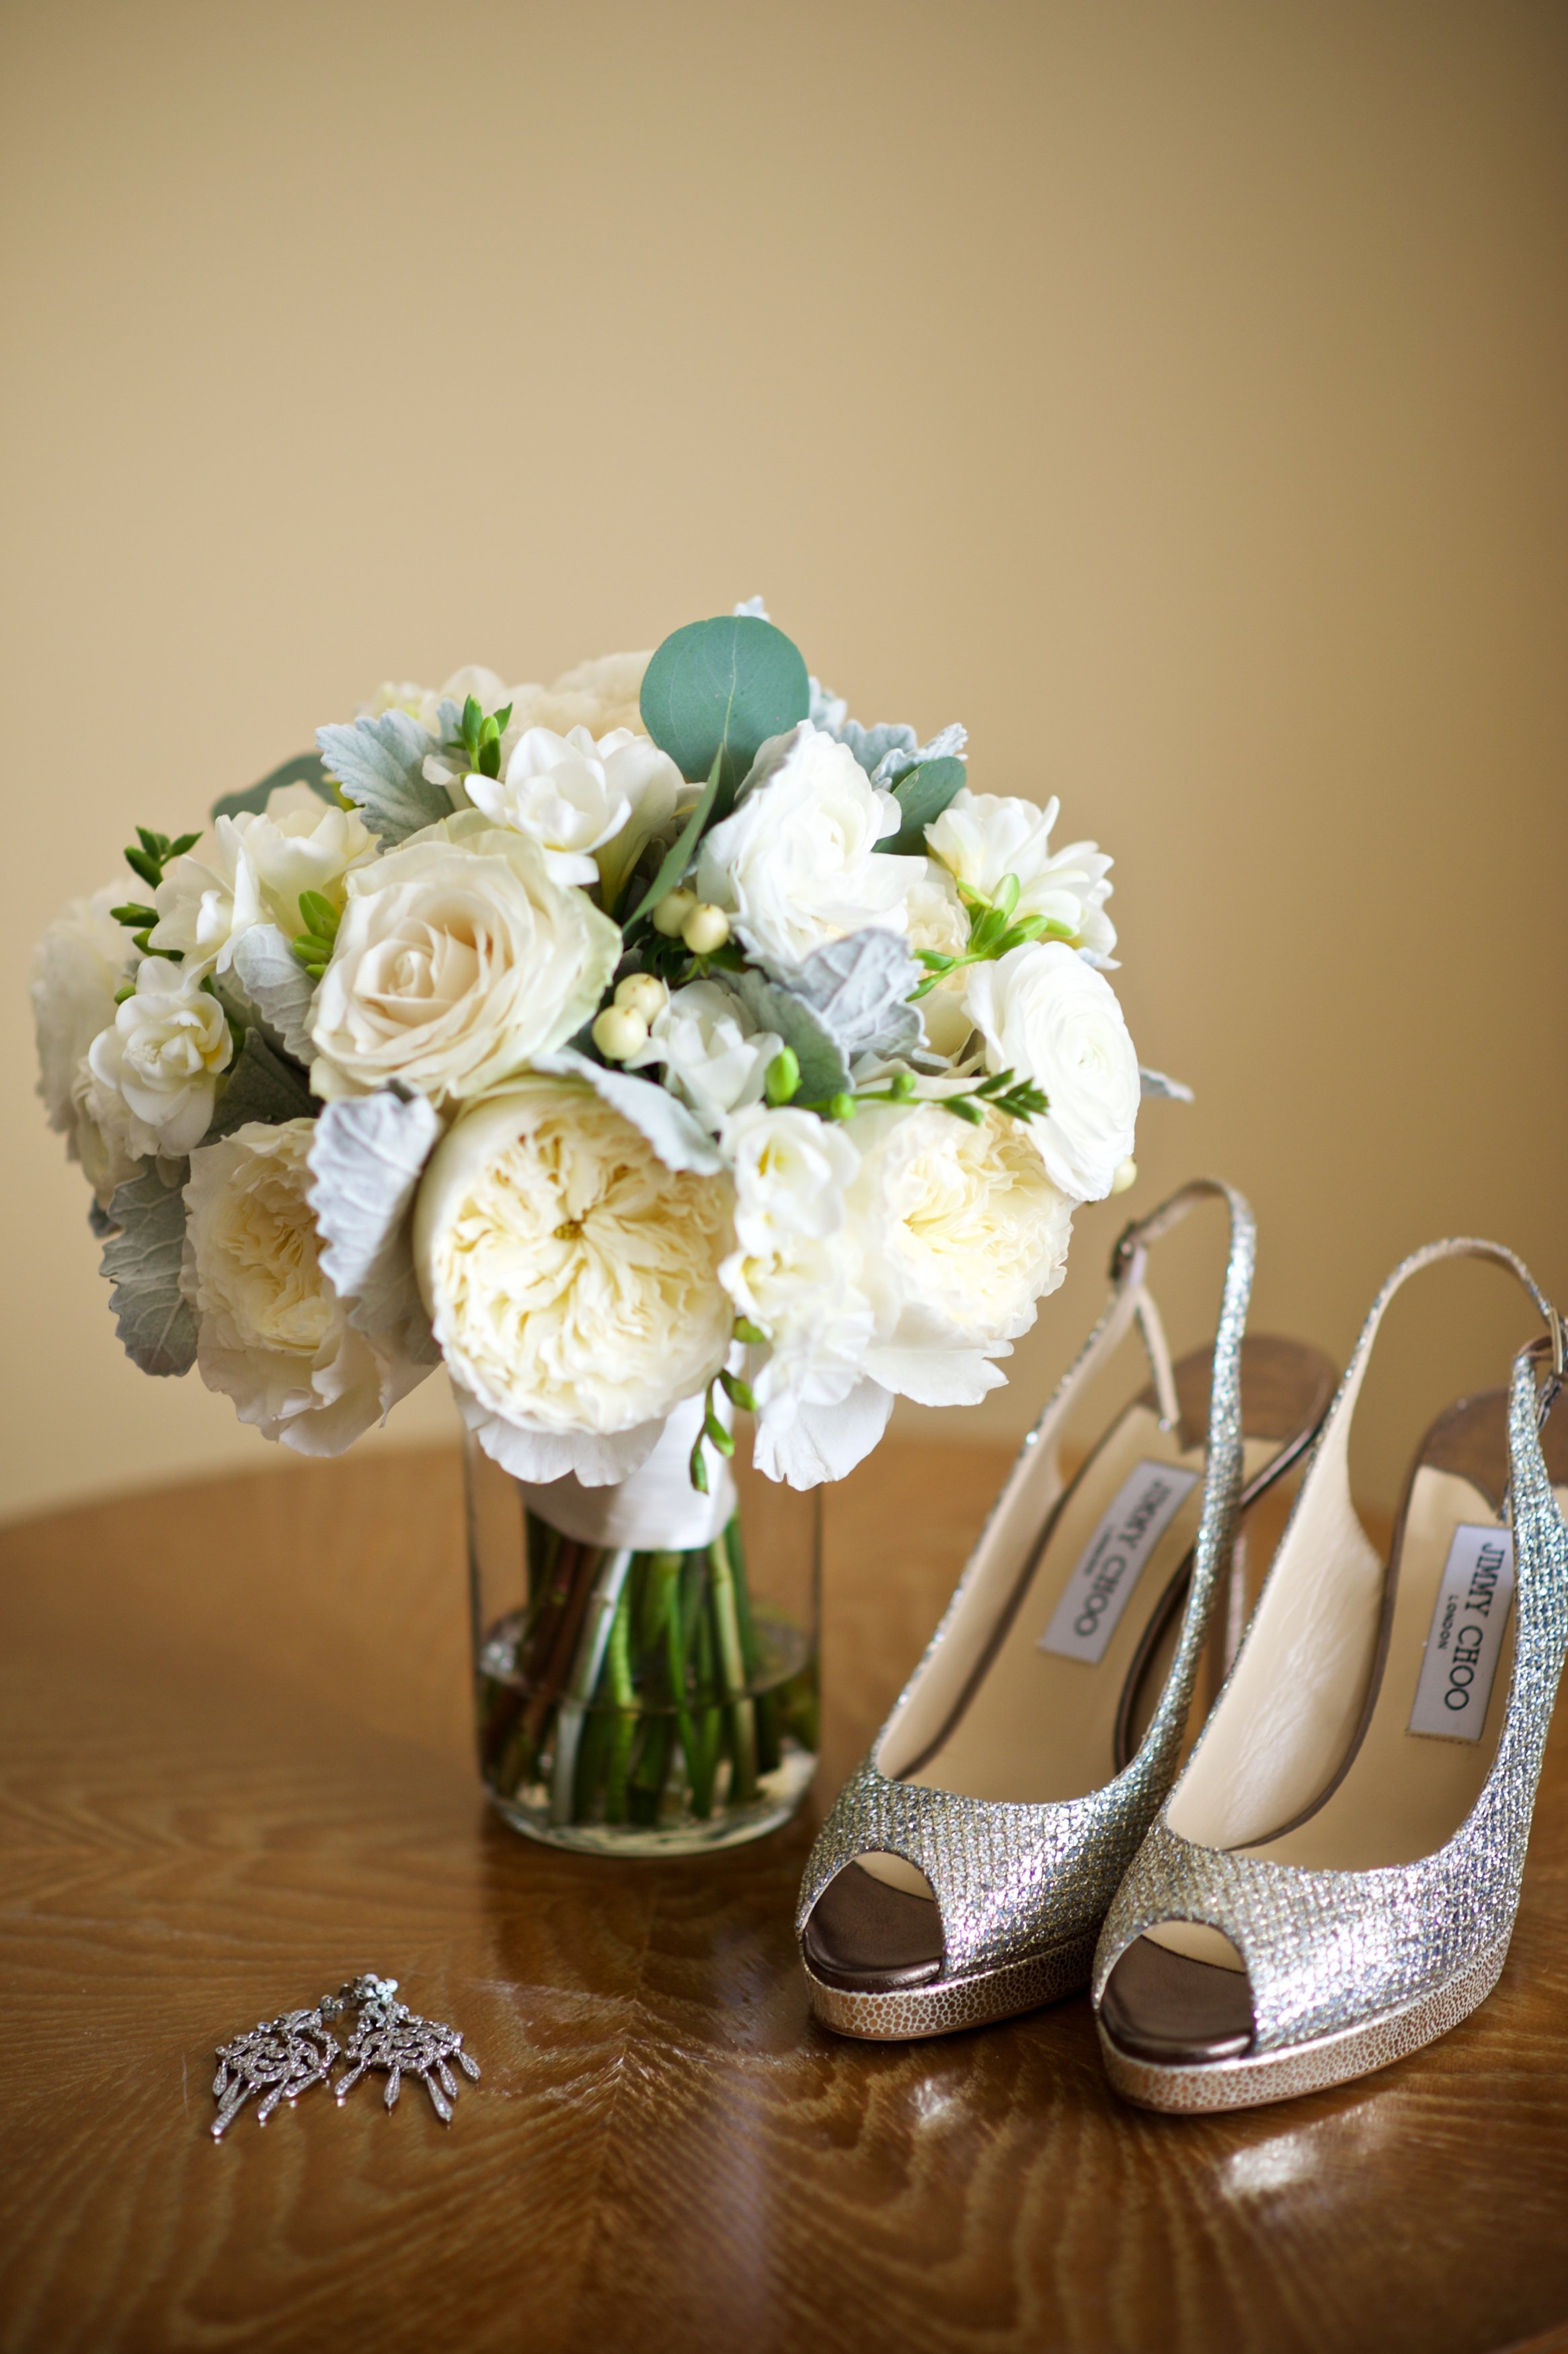 Posted by Joyce Pollakoff Events - A Event Planner professional